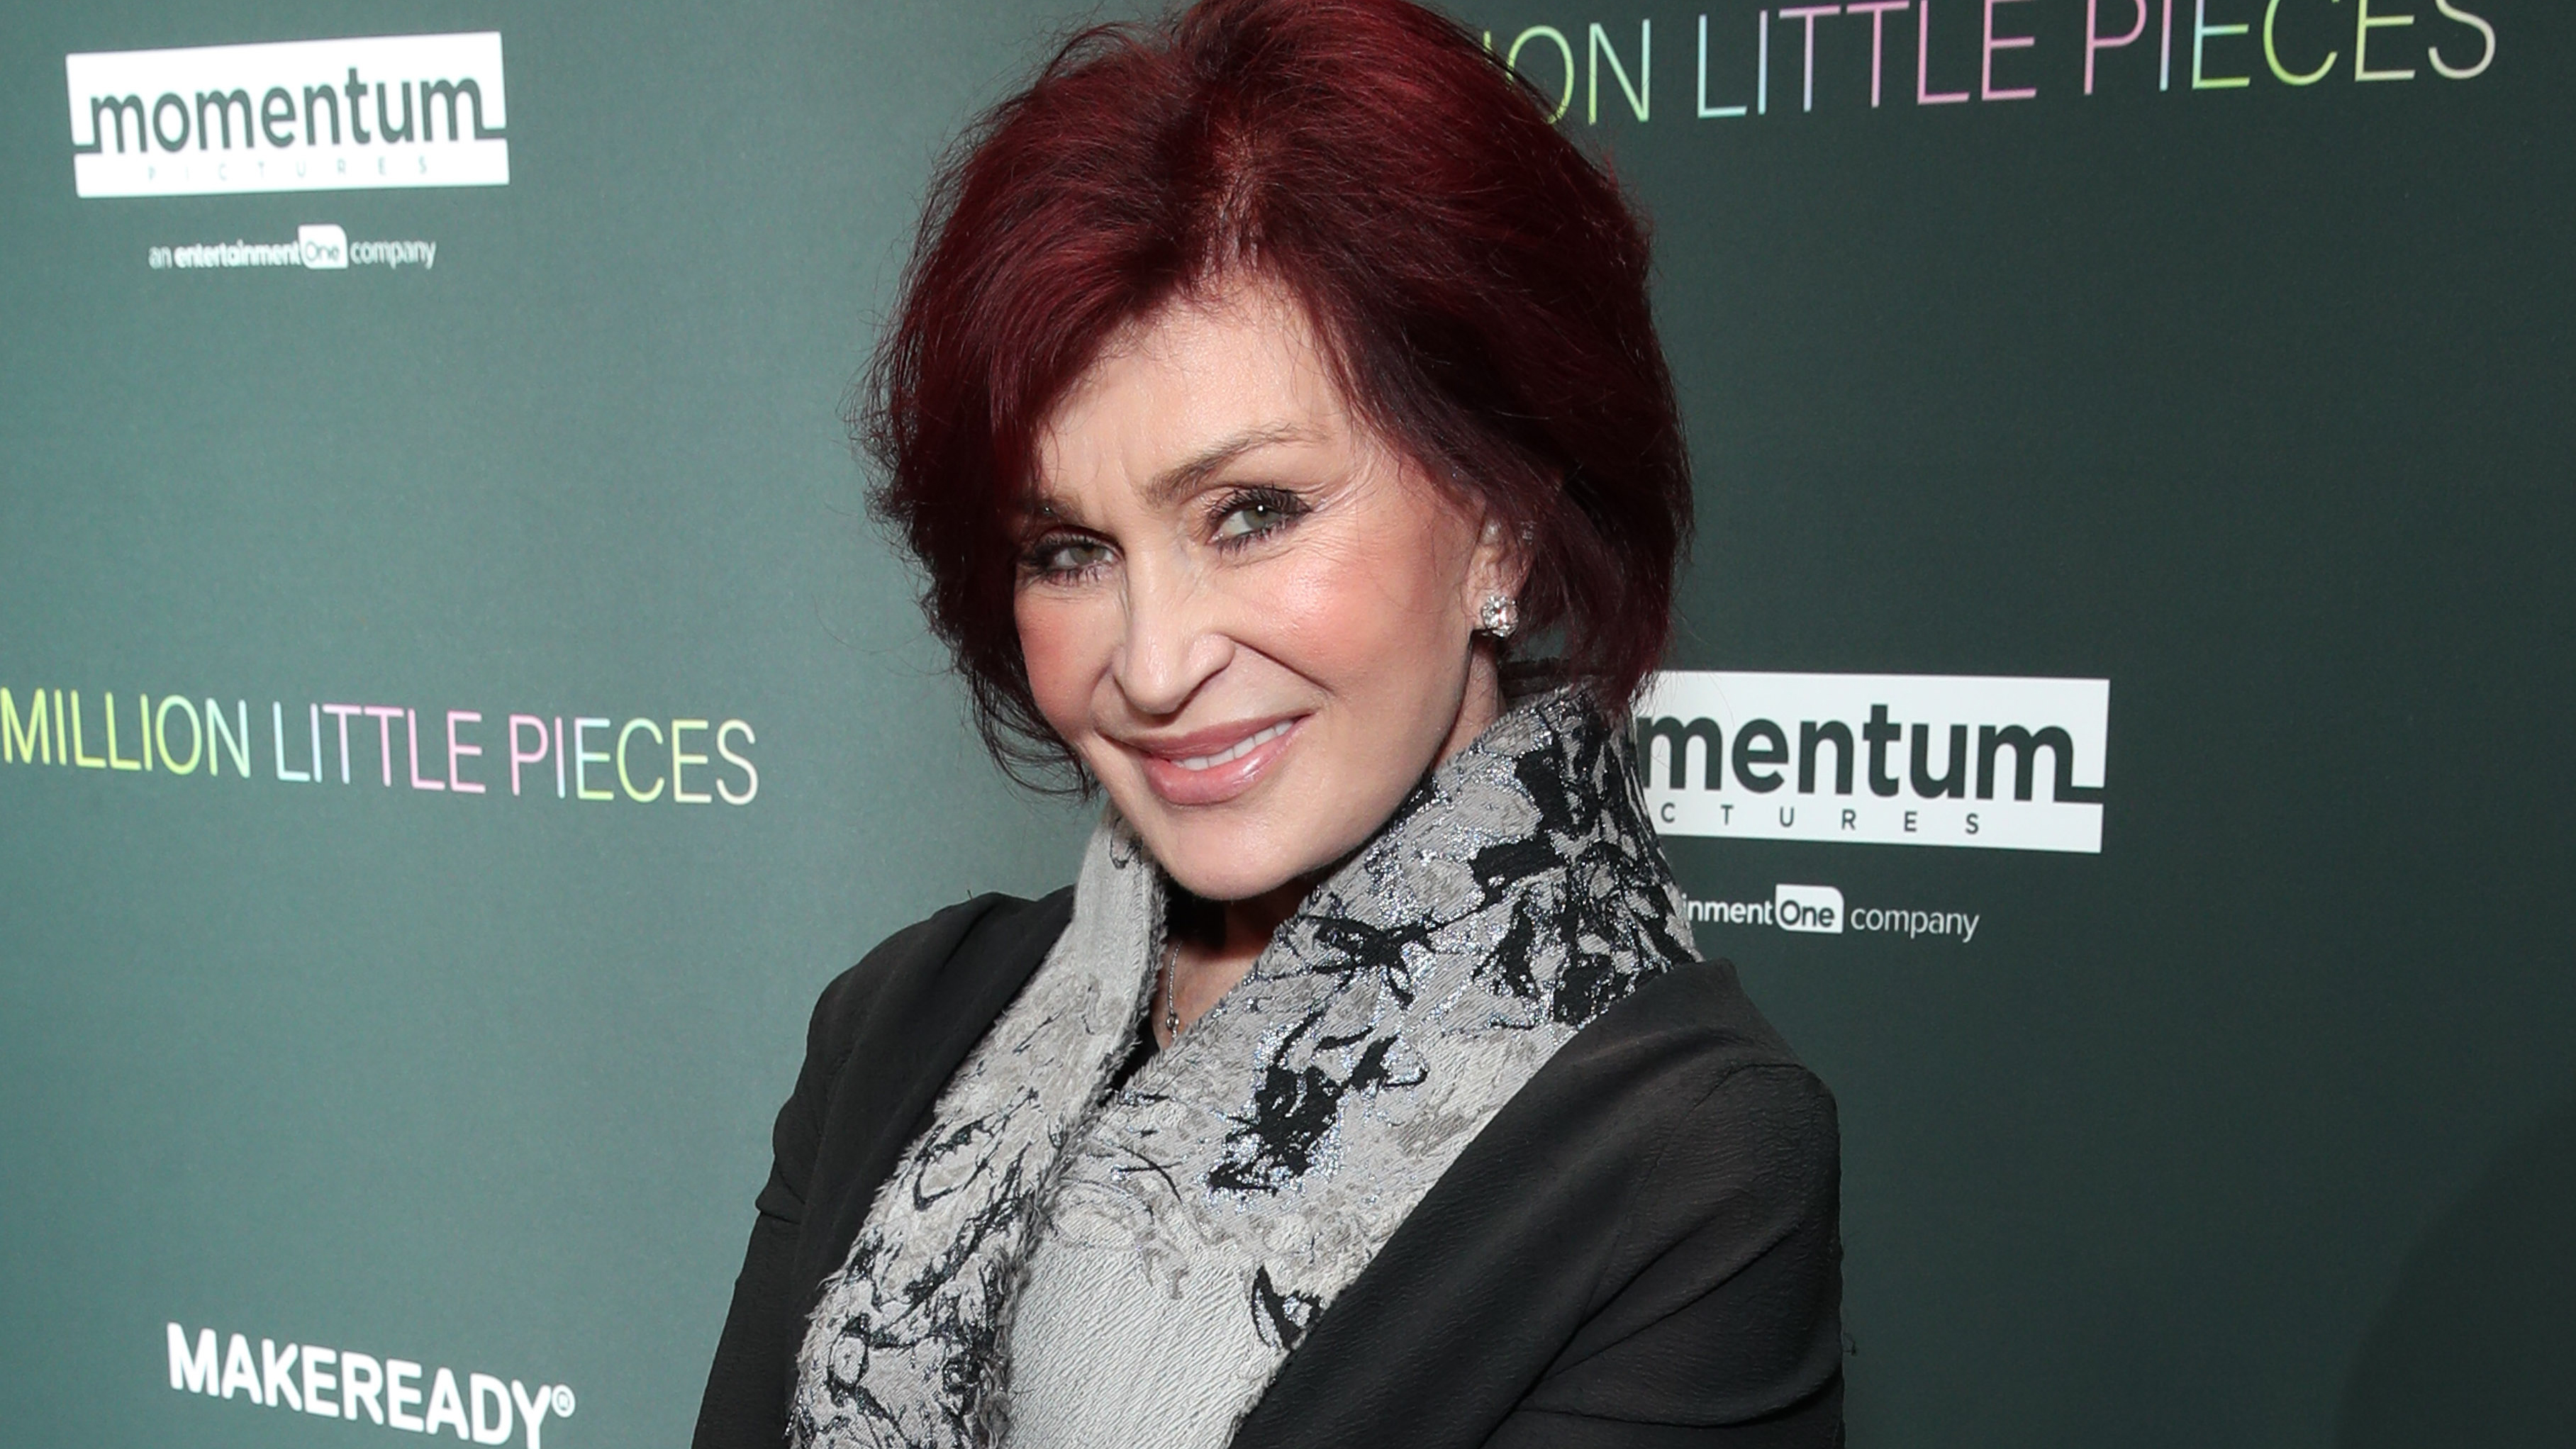 Sharon Osbourne to appear on Bill Maher's show after her exit from 'The Talk'